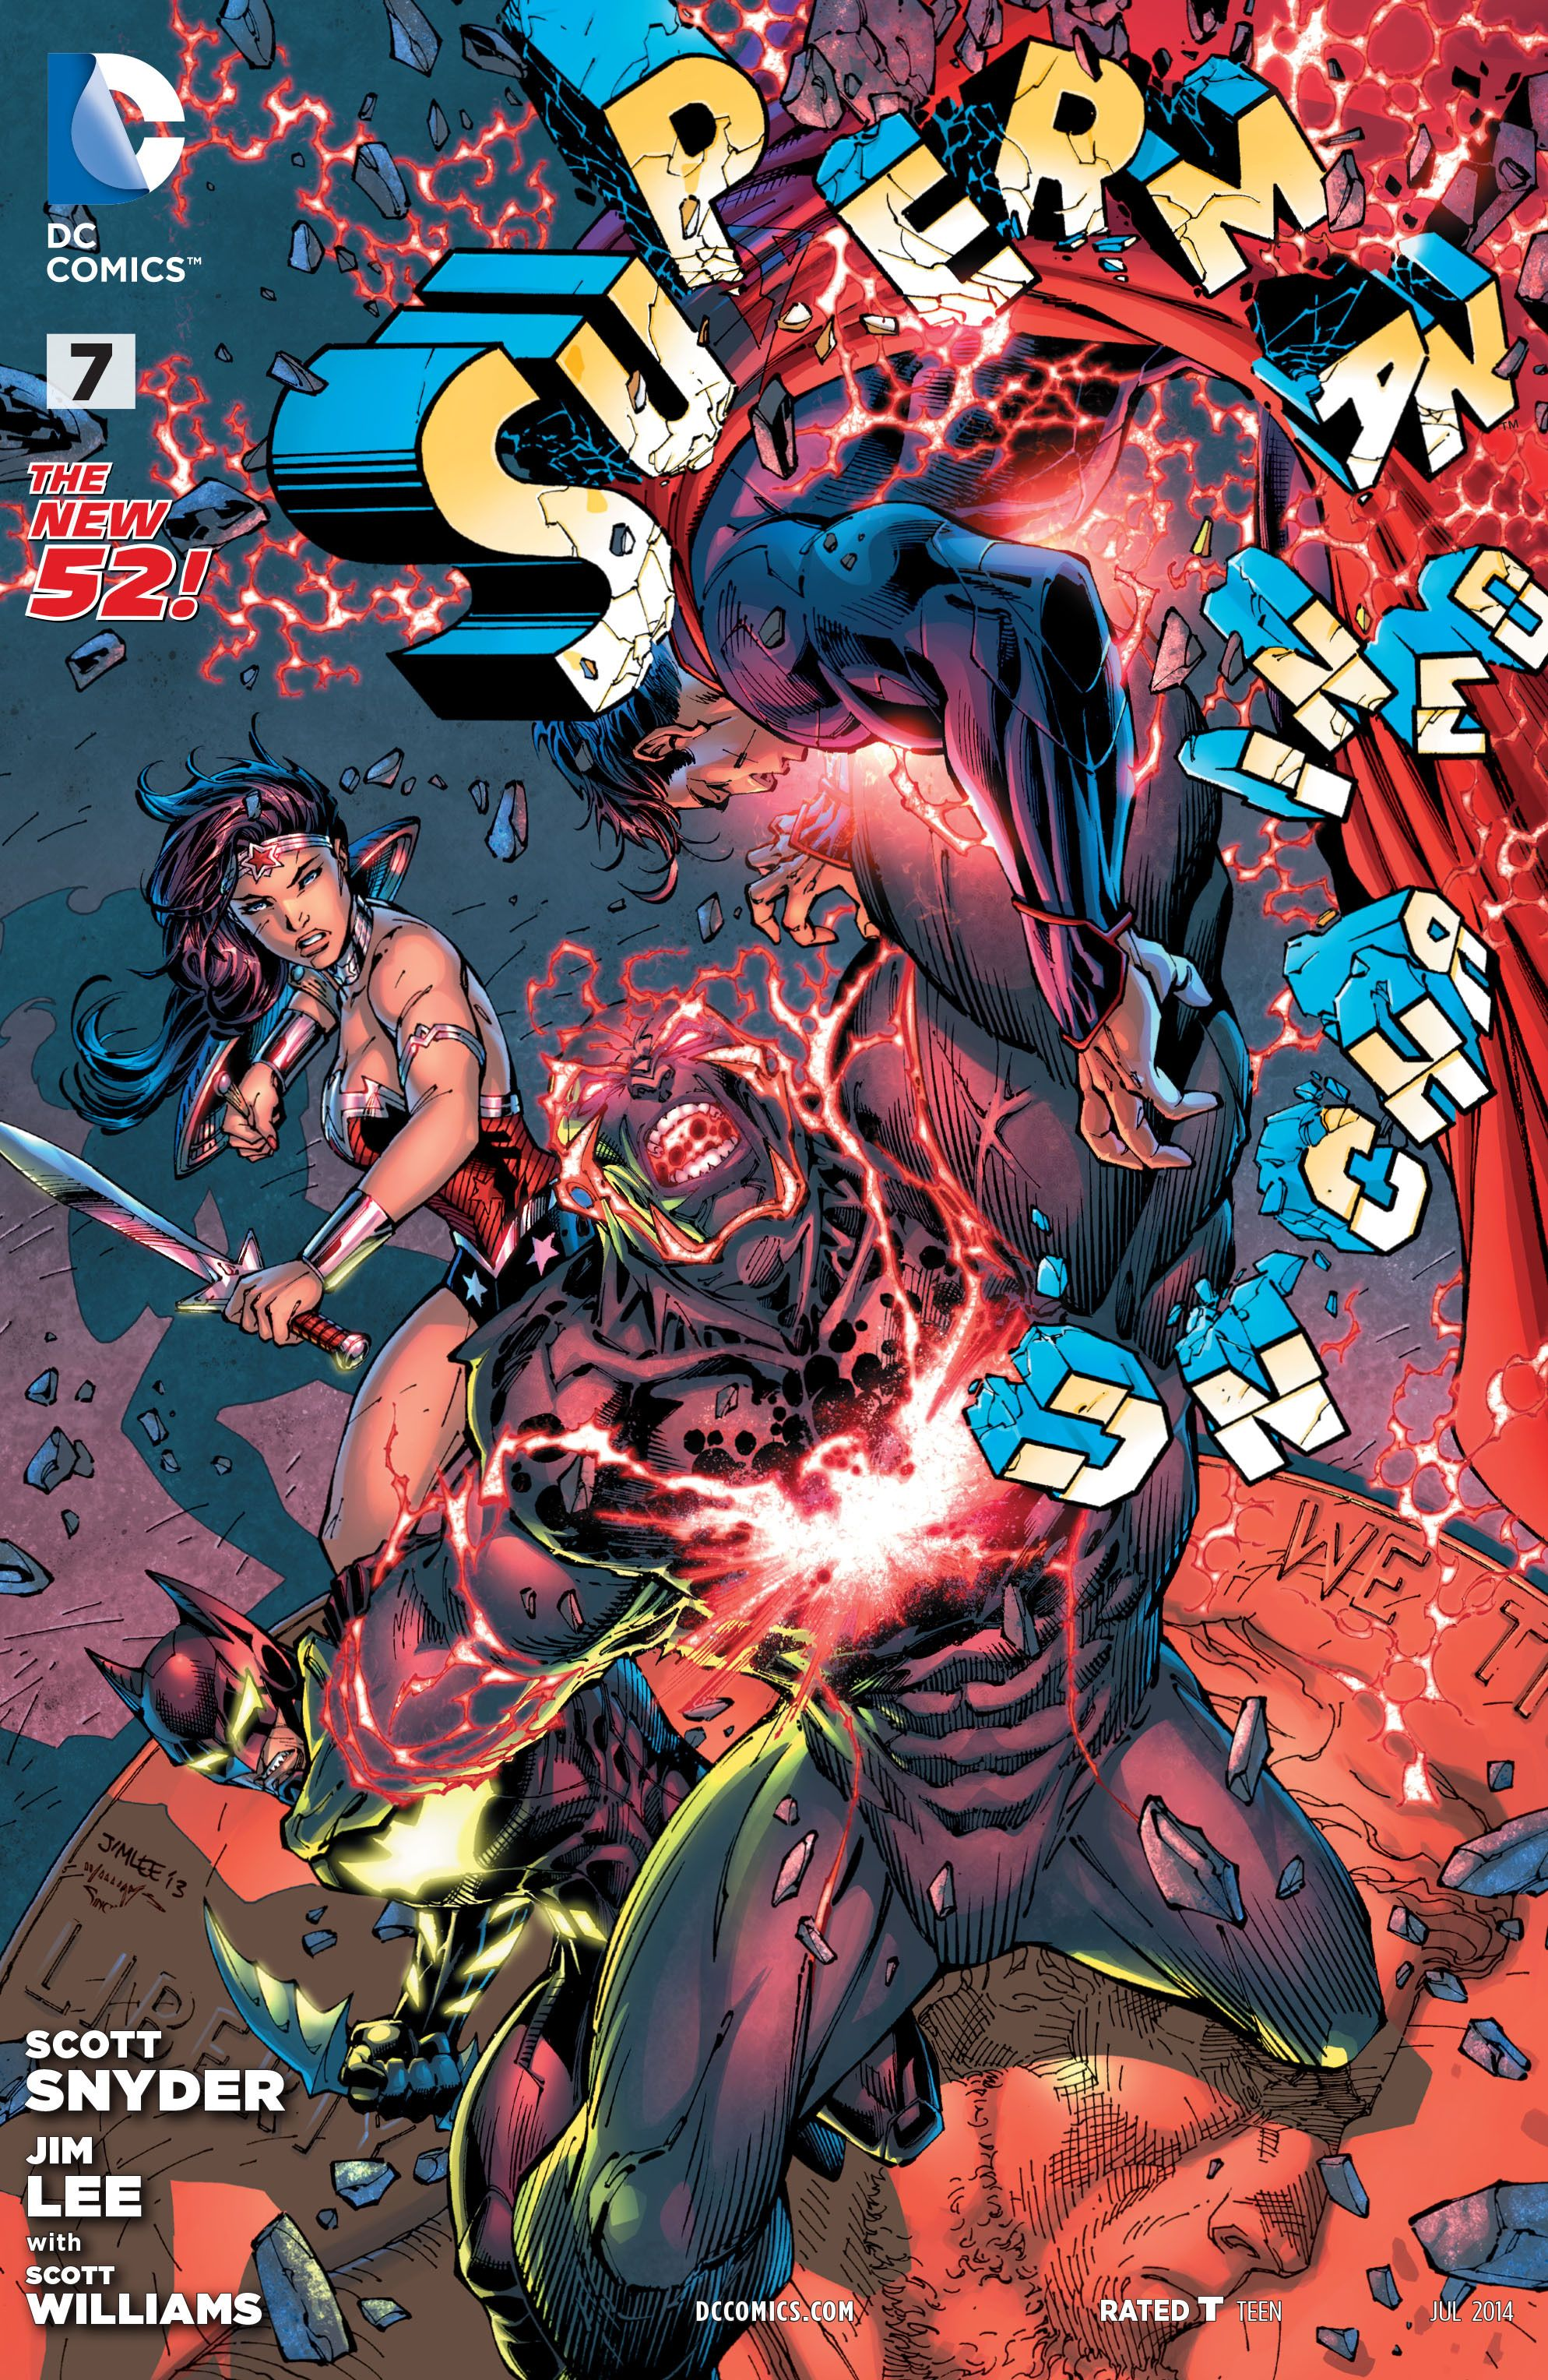 It's a rampage in the Batcave! It's come to this: Superman, Batman and Wonder Woman against Wraith! Alone, they wouldn't have a chance – but they don't have much of one together, either! And all the while, Lex Luthor's machinations are clicking into place…